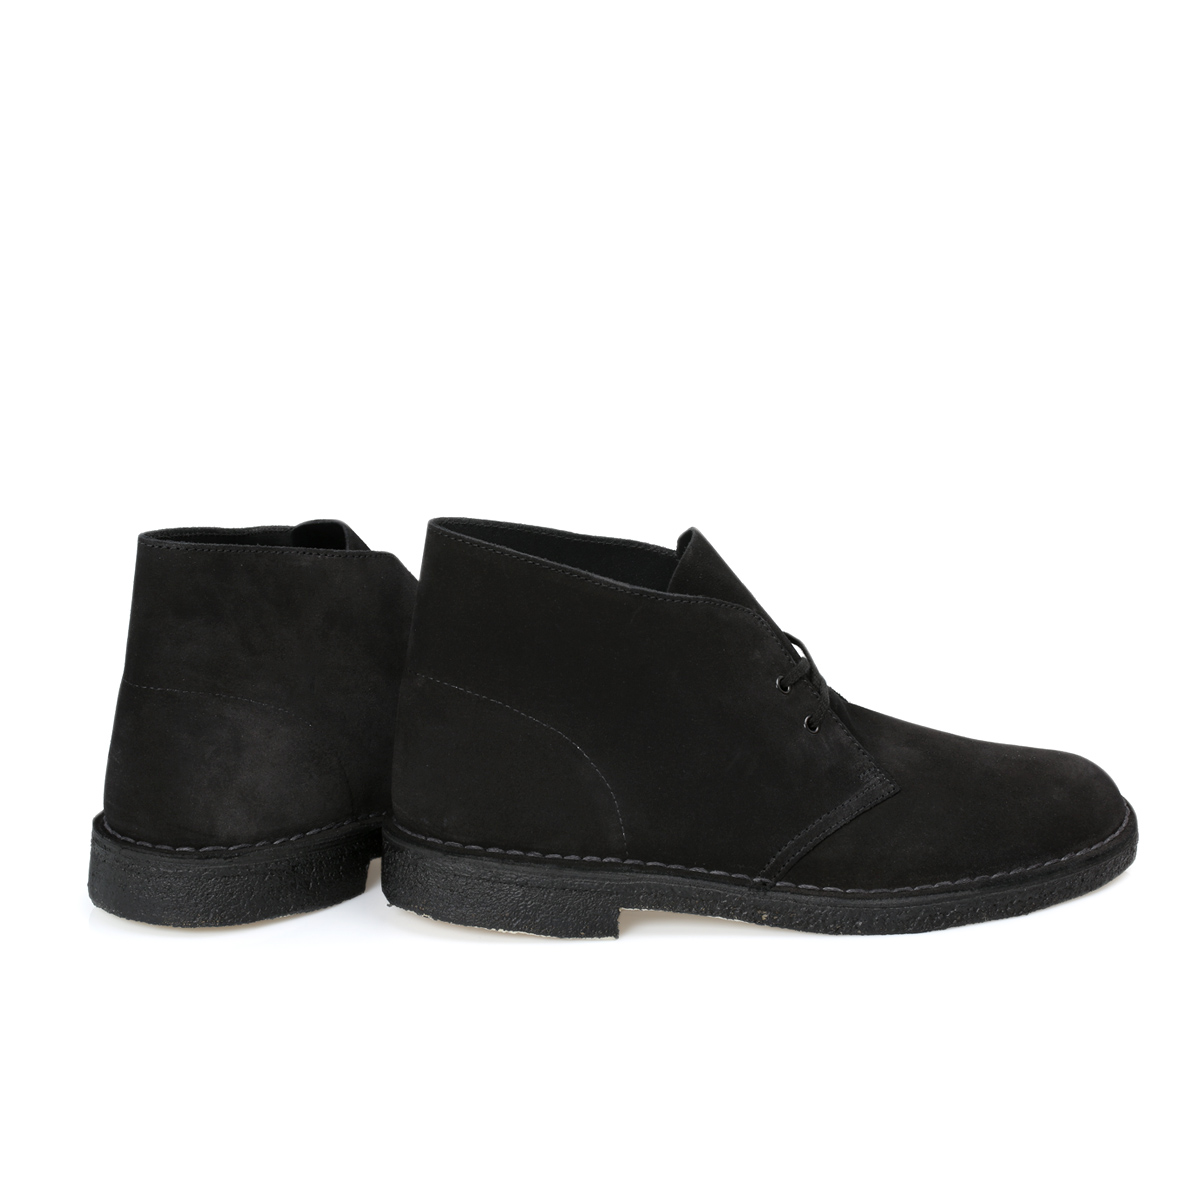 clarks black suede desert mens boots shoes size 8 11 ebay